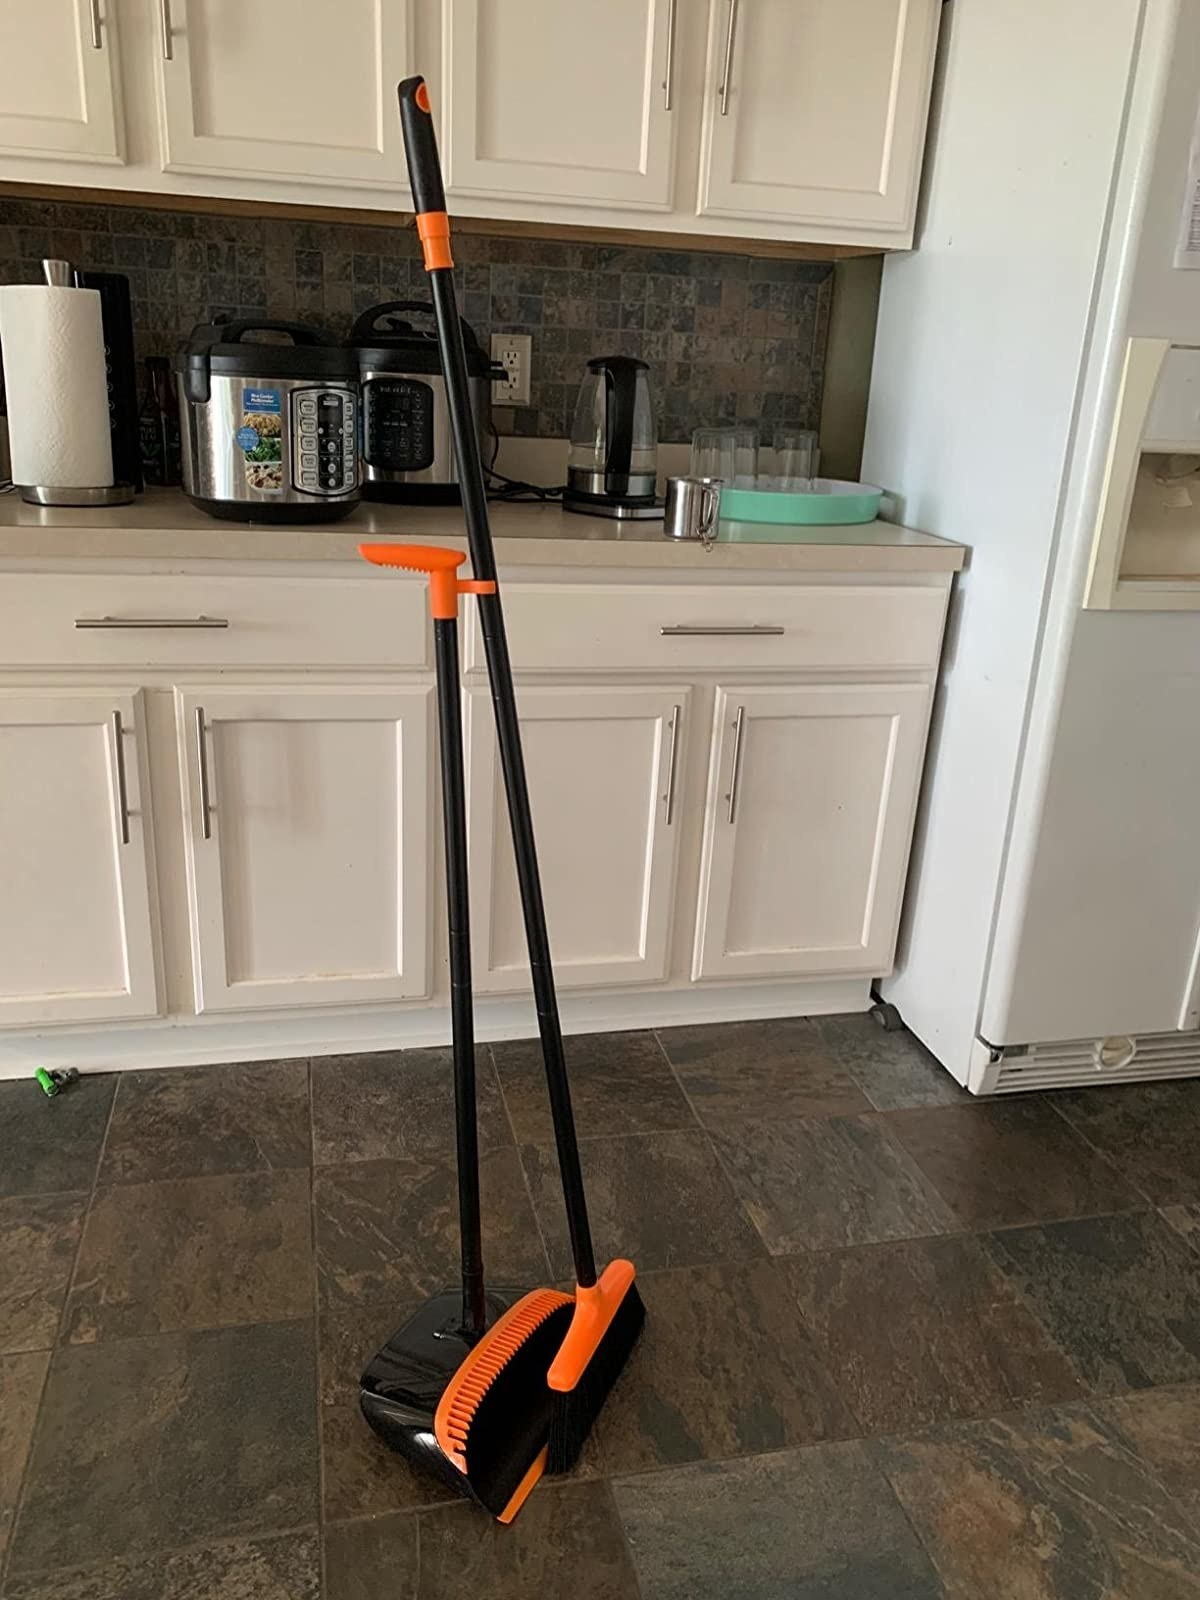 reviewer image of the orange homemaxs broom and dustpan set in a customer's kitchen